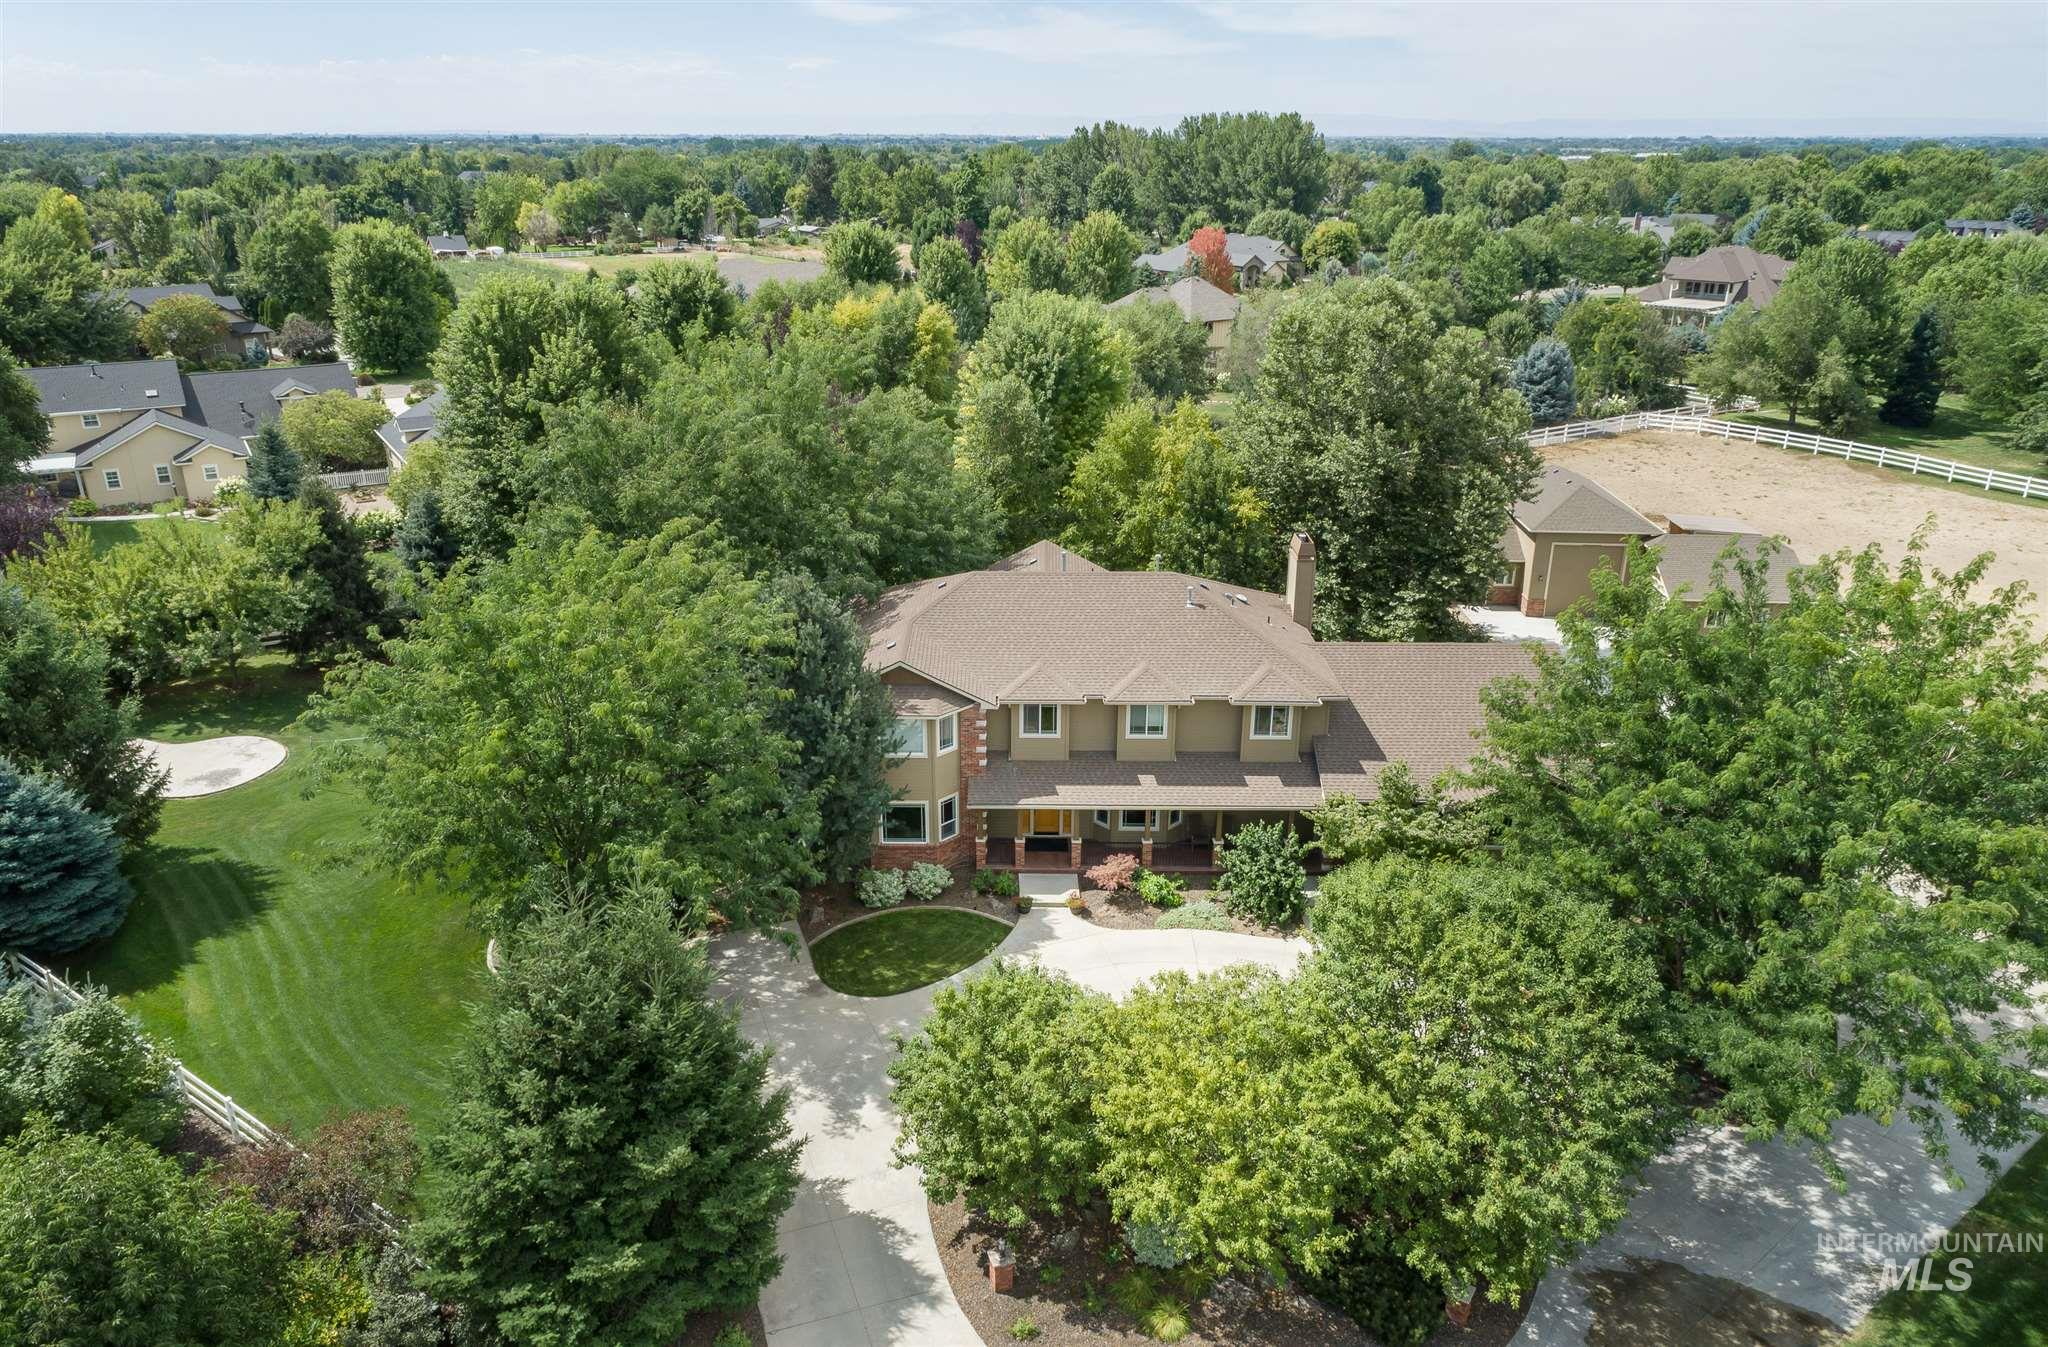 2103 W. Champagne Court, Eagle, Idaho 83616, 6 Bedrooms, 4.5 Bathrooms, Residential For Sale, Price $1,300,000, 98777230